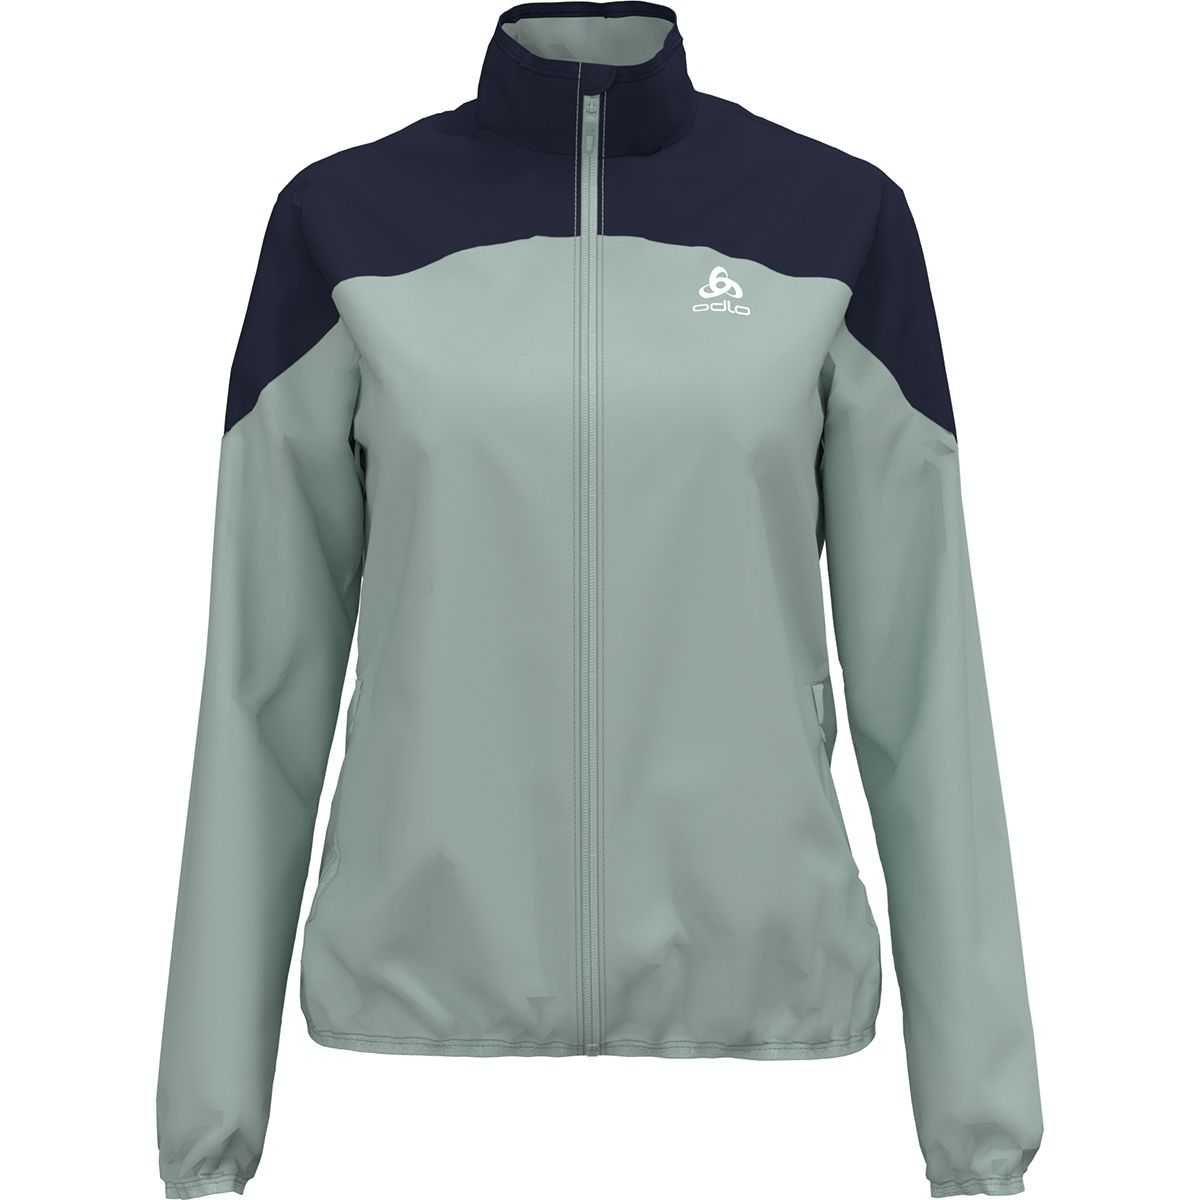 Odlo Damen Core Light Jacke (Größe L, Grün) | Windbreaker > Damen